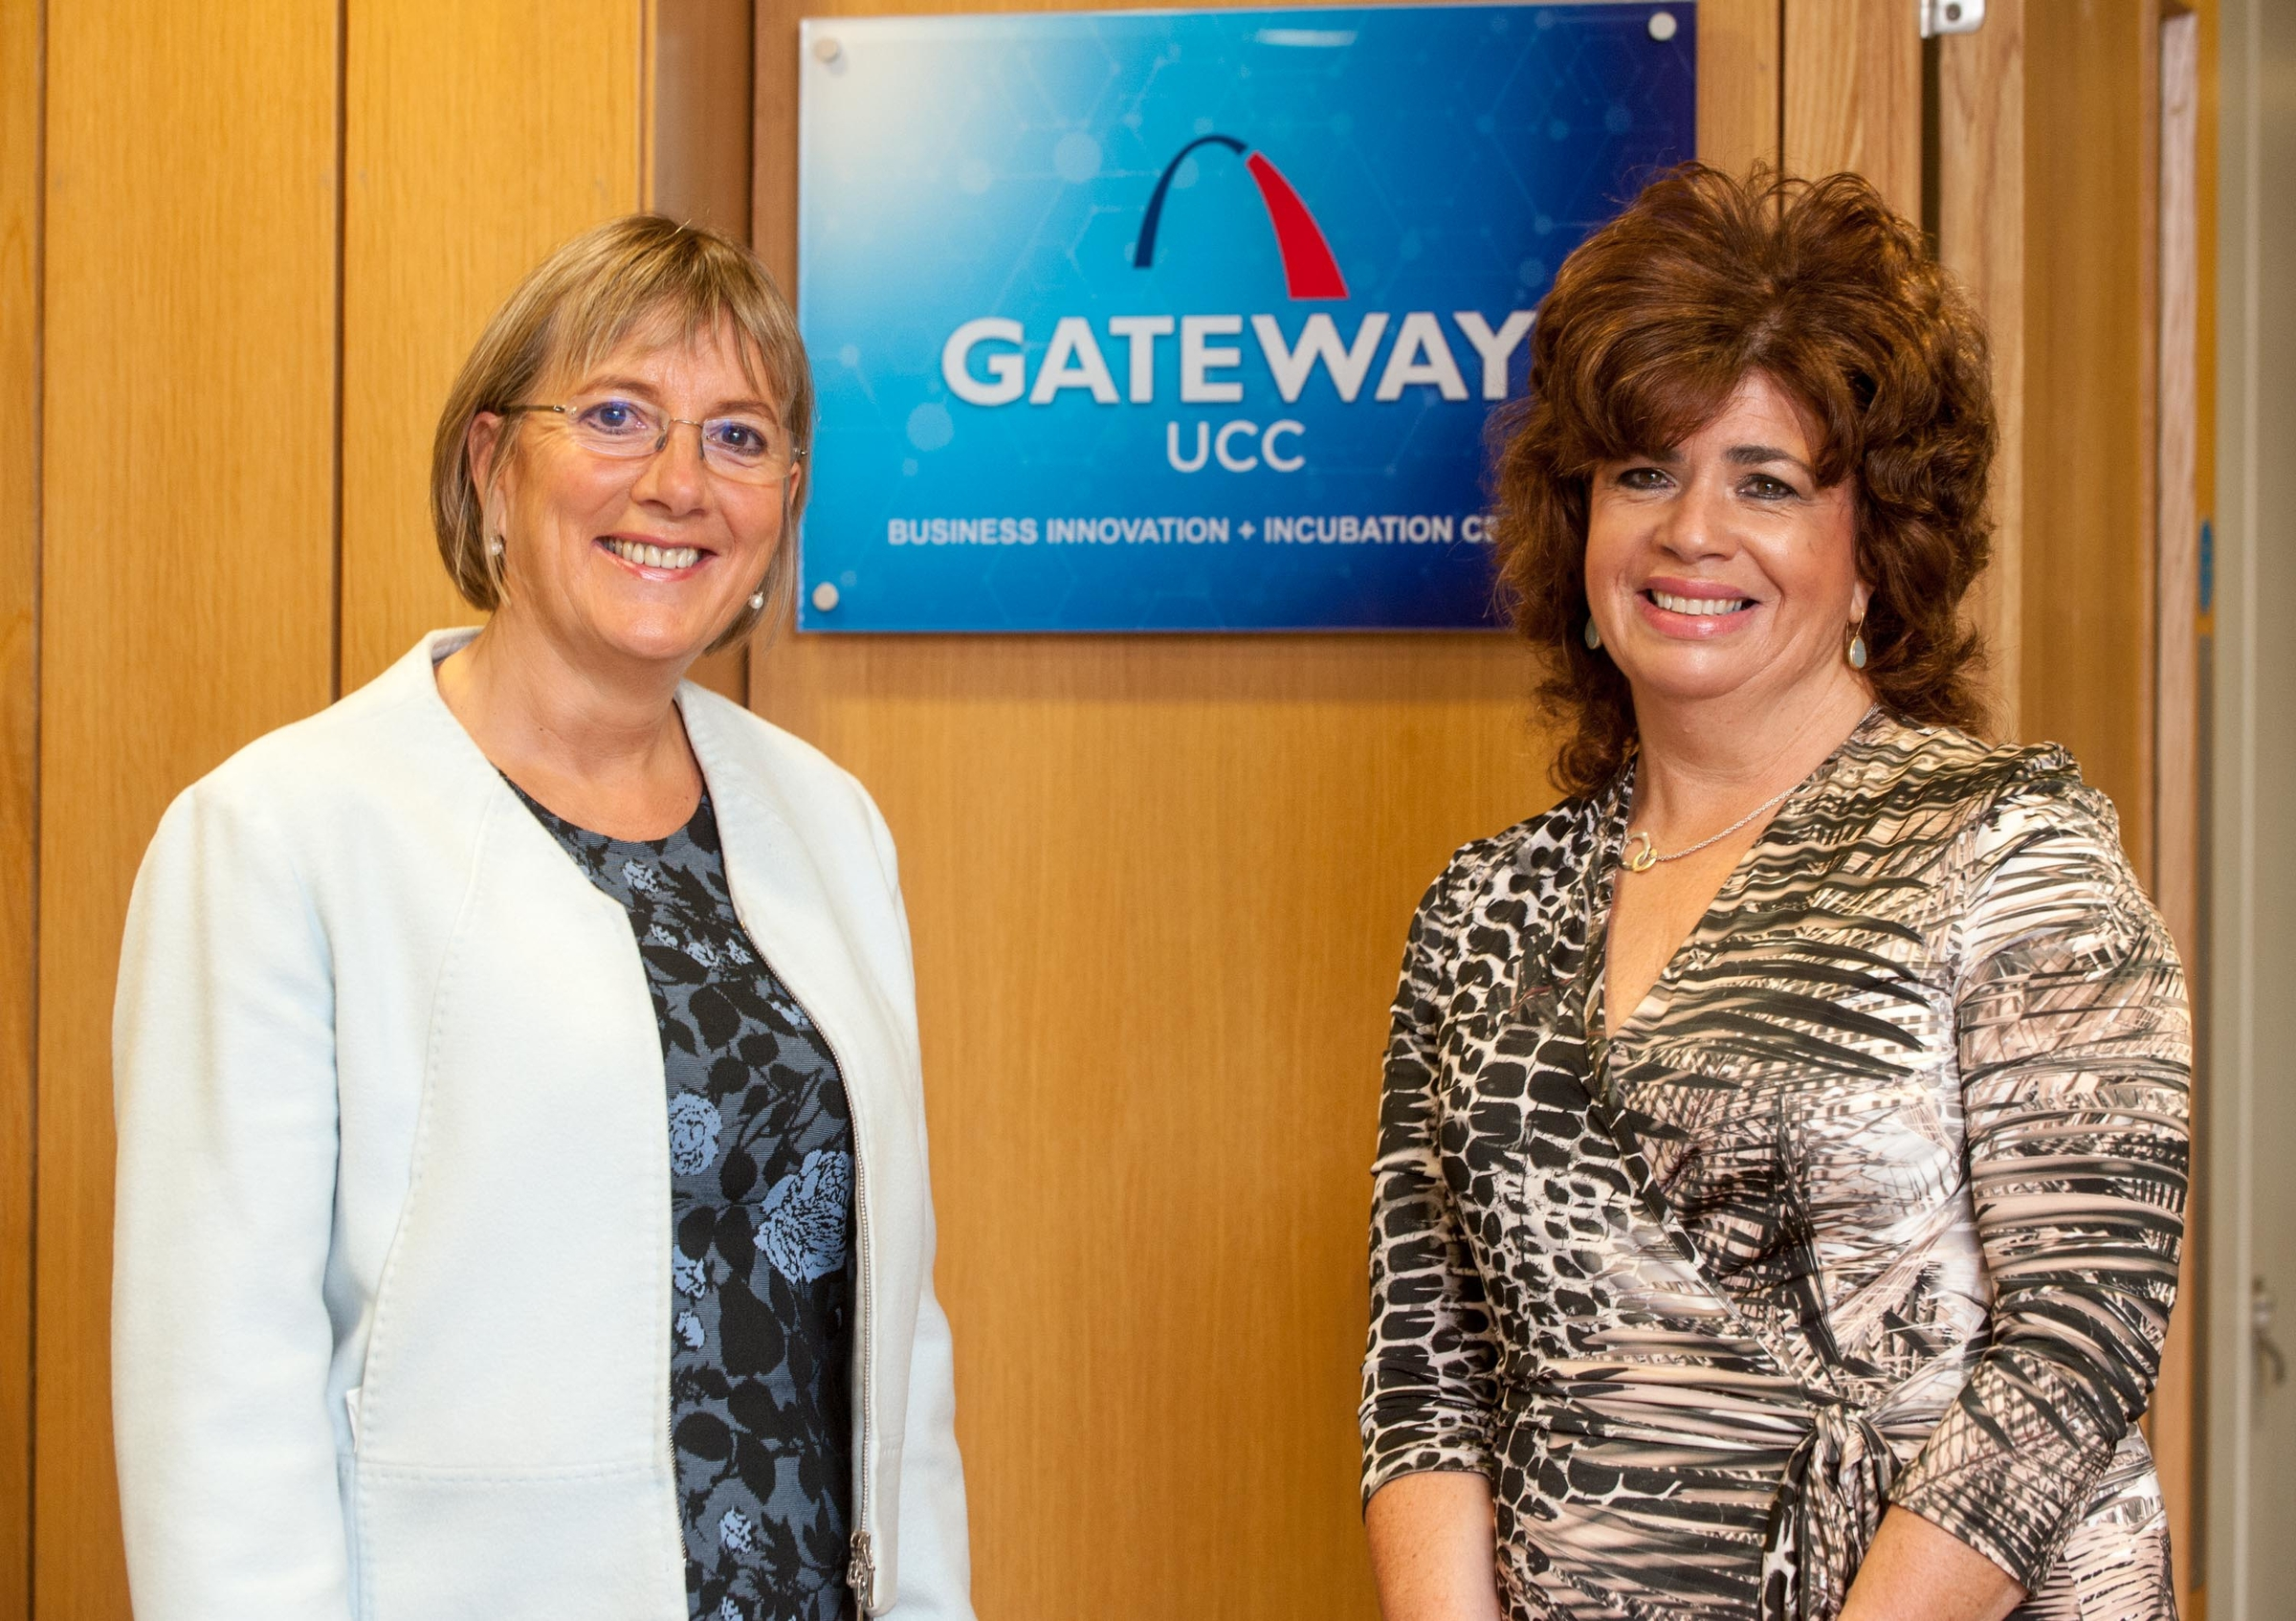 Enterprise Ireland Hosted its Board Meeting in GATEWAY UCC on 9th September